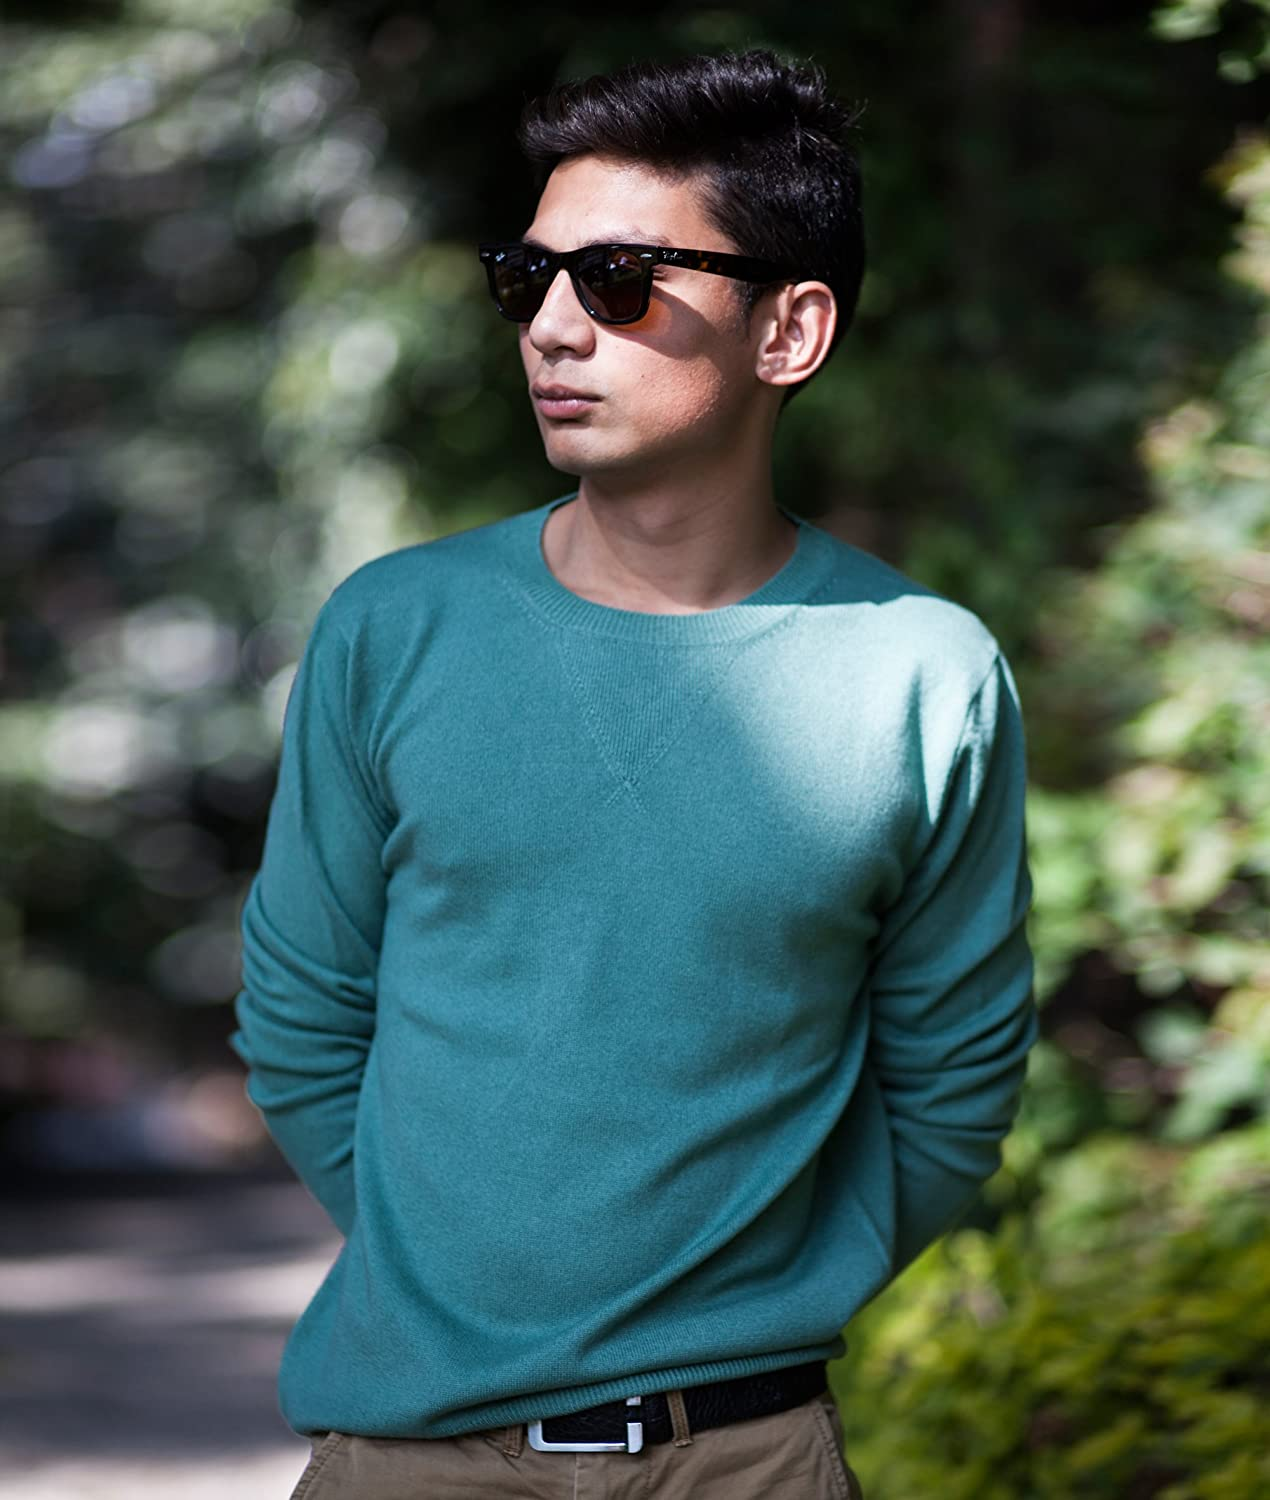 Men's 100% Cashmere Sweater, Hand-Knitted, Round Neck, V-Pattern, 26/2 Mongolian Yarn, Green © Moksha Cashmere Green © Moksha Cashmere